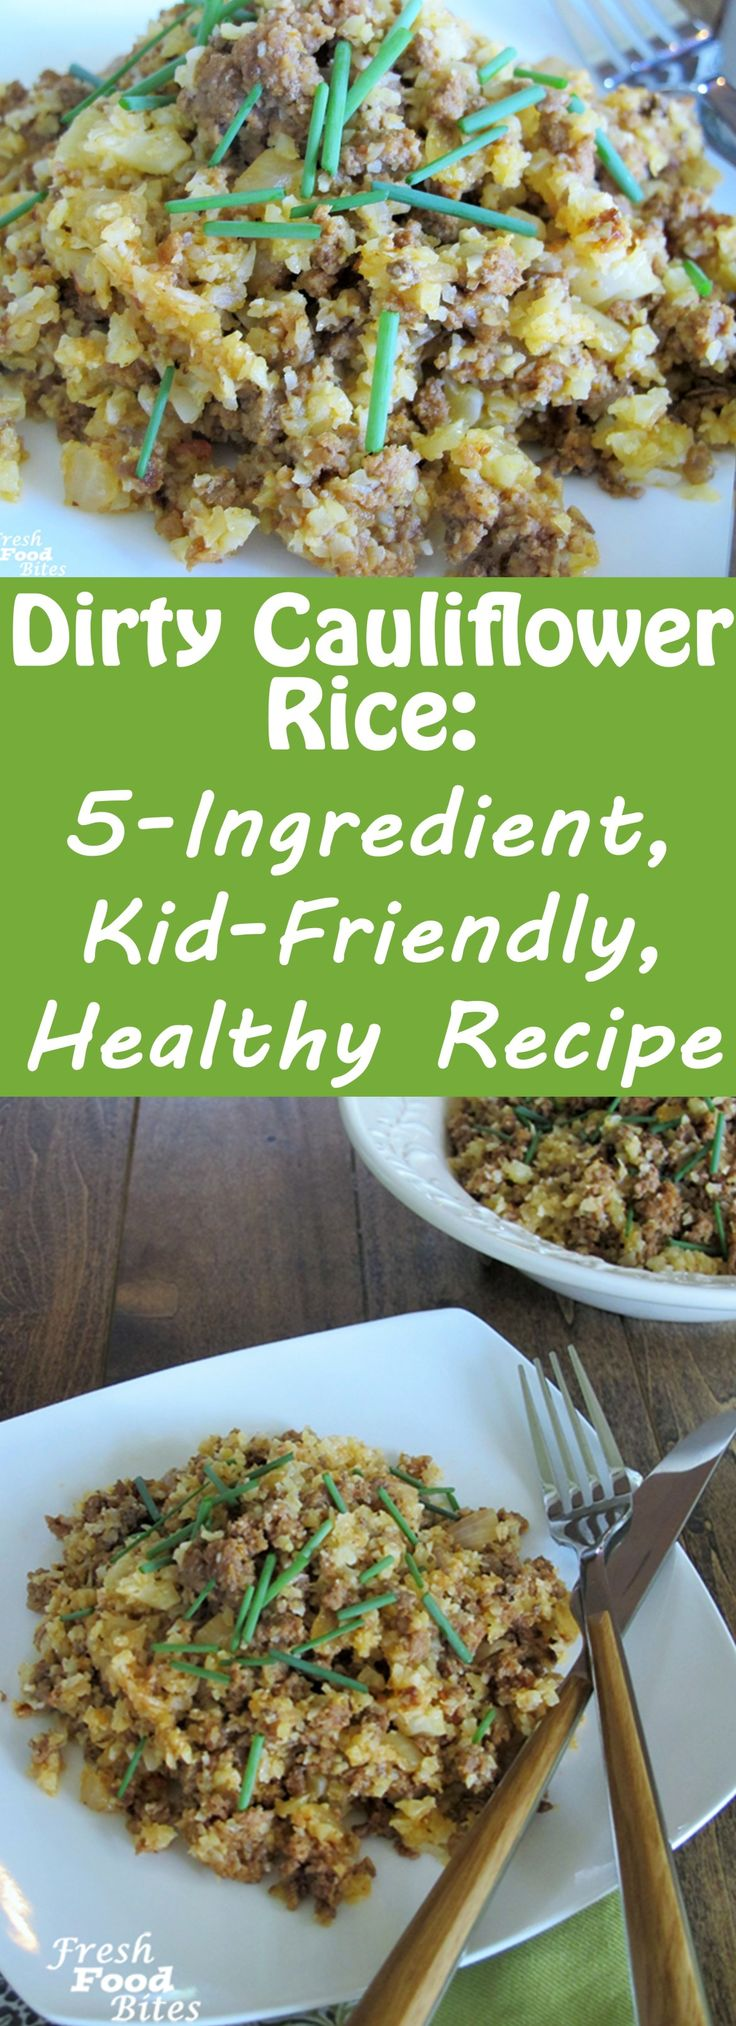 Make this healthifyied, veggie-filled Dirty Cauliflower Rice next time you are looking for a 5-ingredient, kid-friendly, healthy recipe. It's full of flavor and short on ingredients, which means you'll spend next to no time (25 minutes to be specific) in the kitchen to get dinner on the table. Kids love this recipe and don't need to know they are eating cauliflower (unless you want to tell them, that is!).